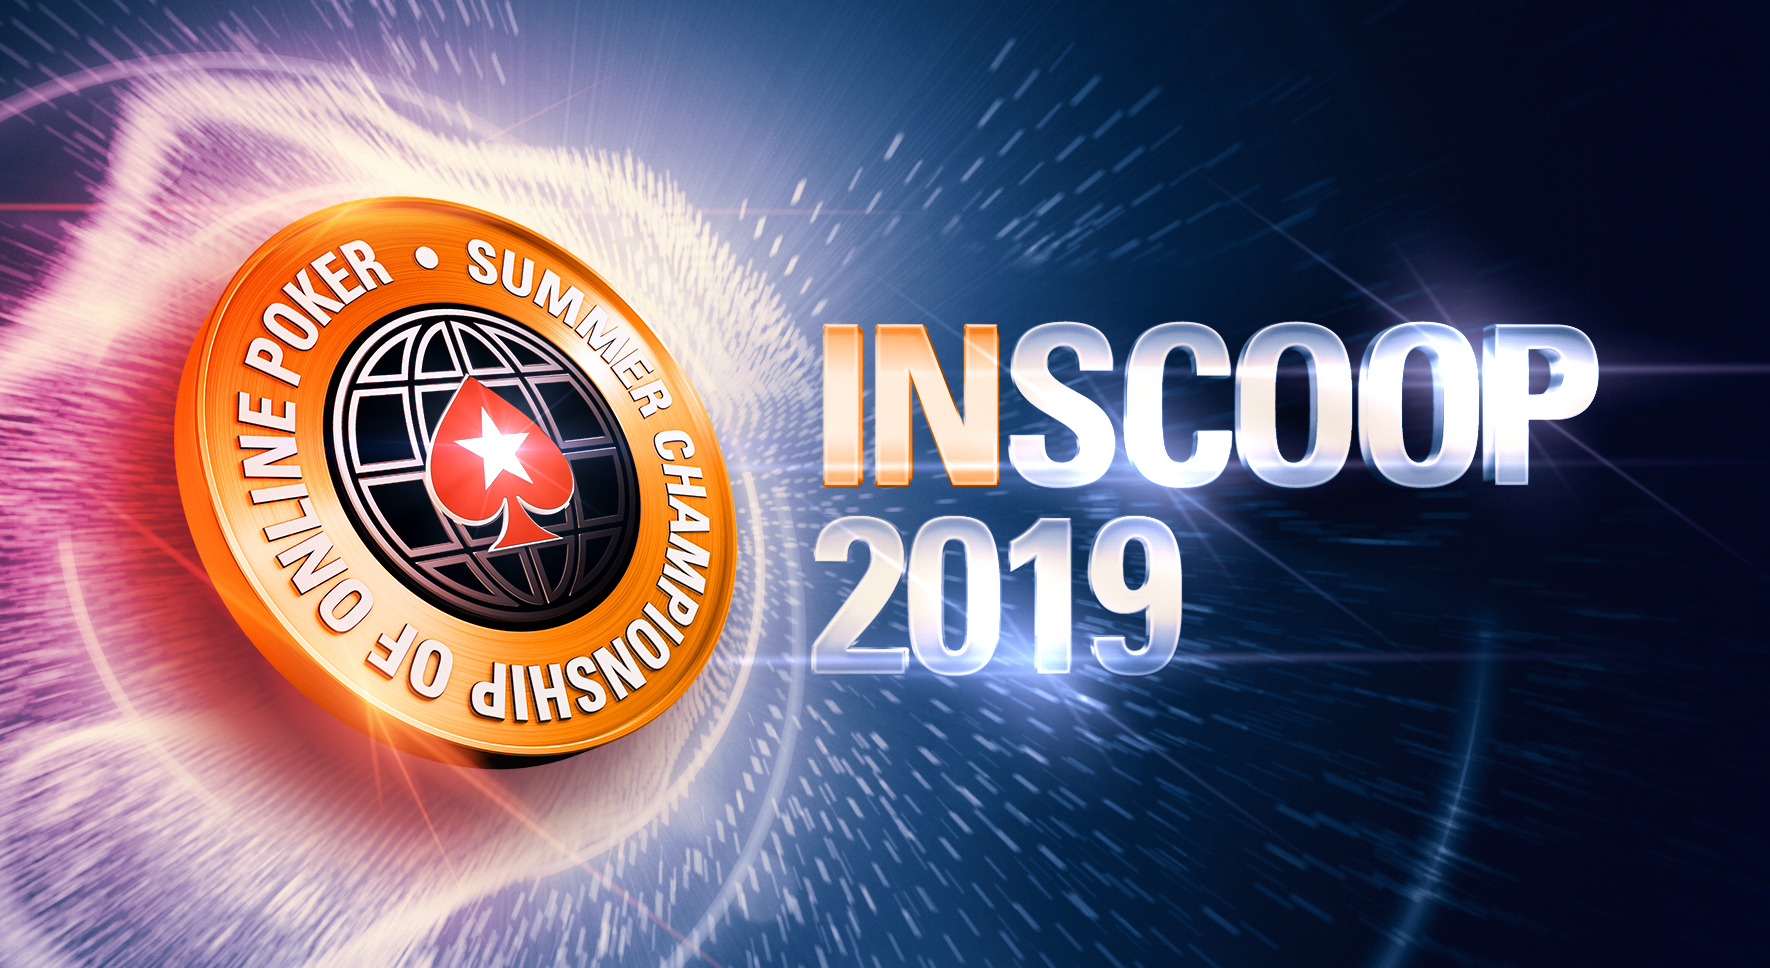 The world's leading online poker operator, PokerStars, has announced its third online tournament series in India, INSCOOP.